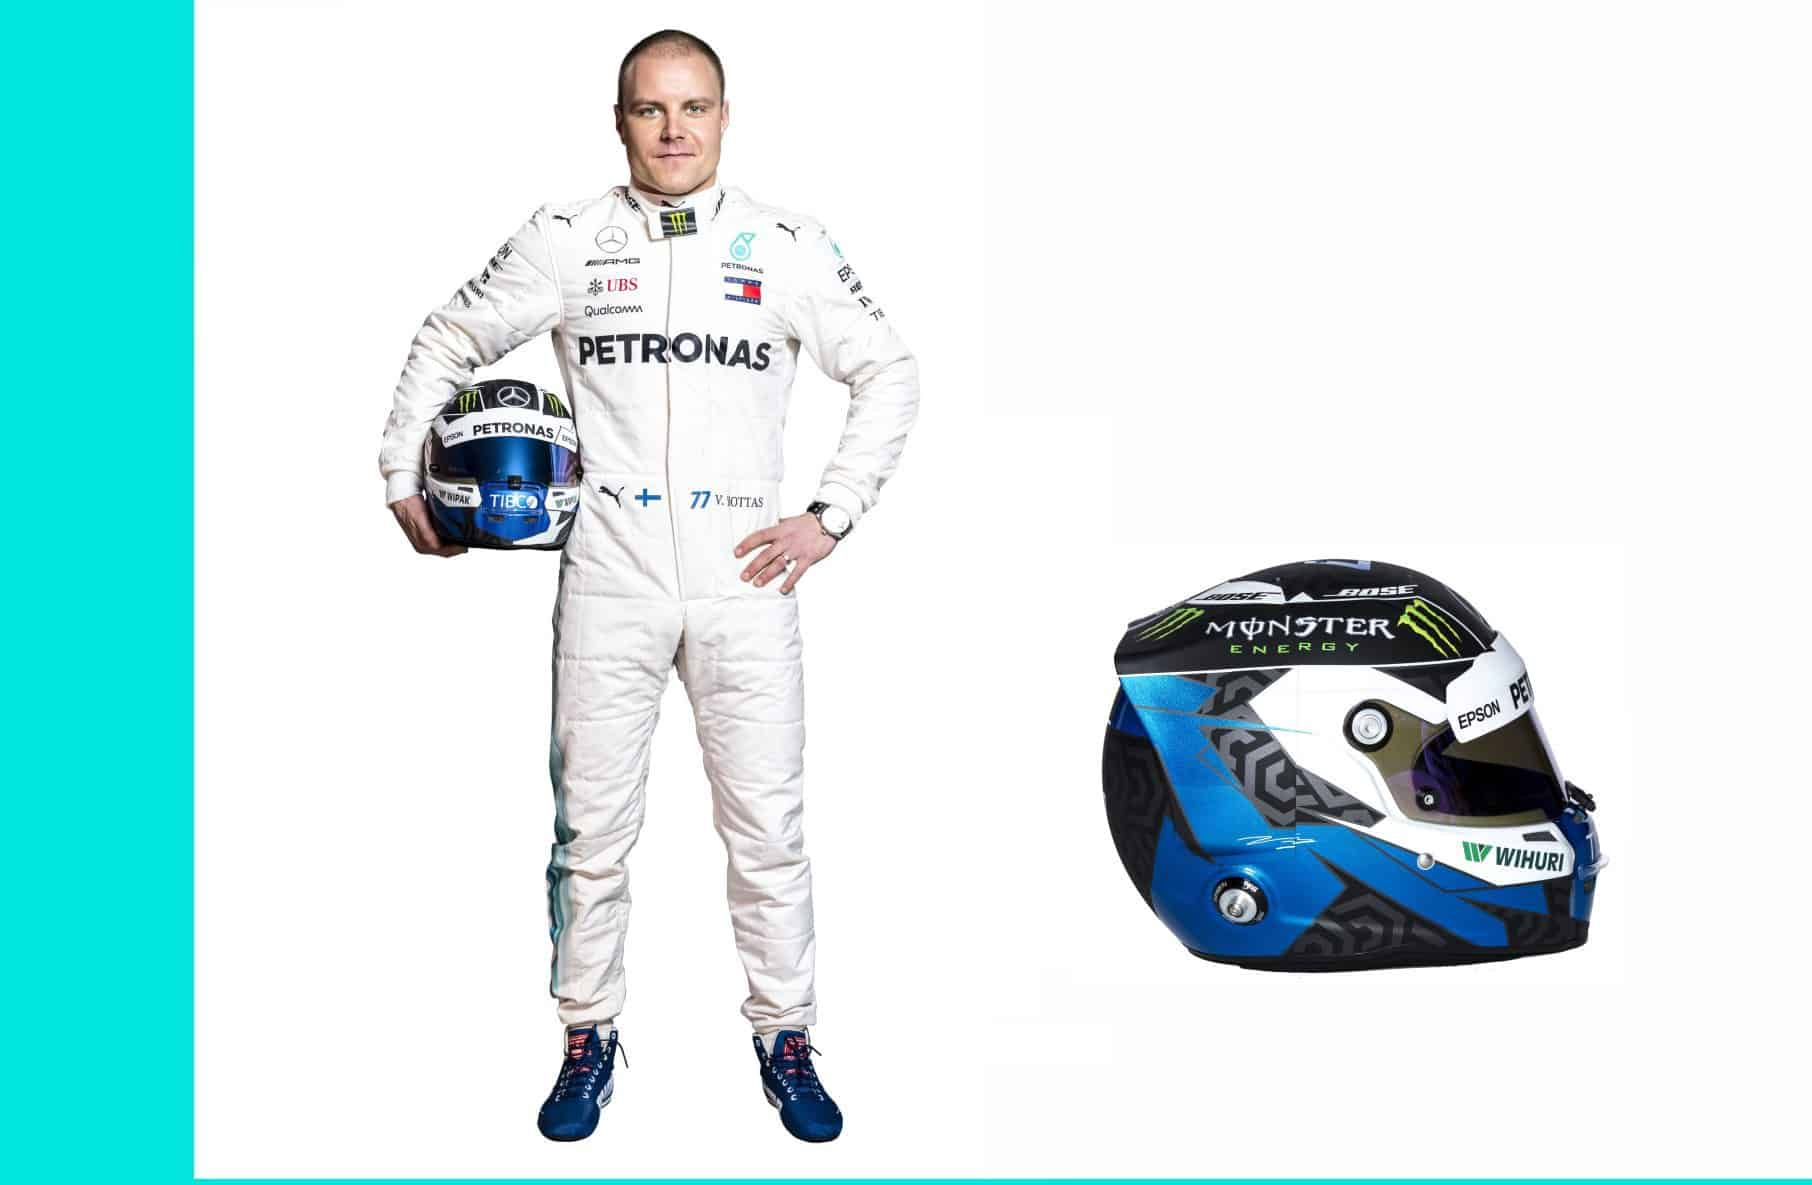 Valtteri Bottas Mercedes F1 2018 profile full